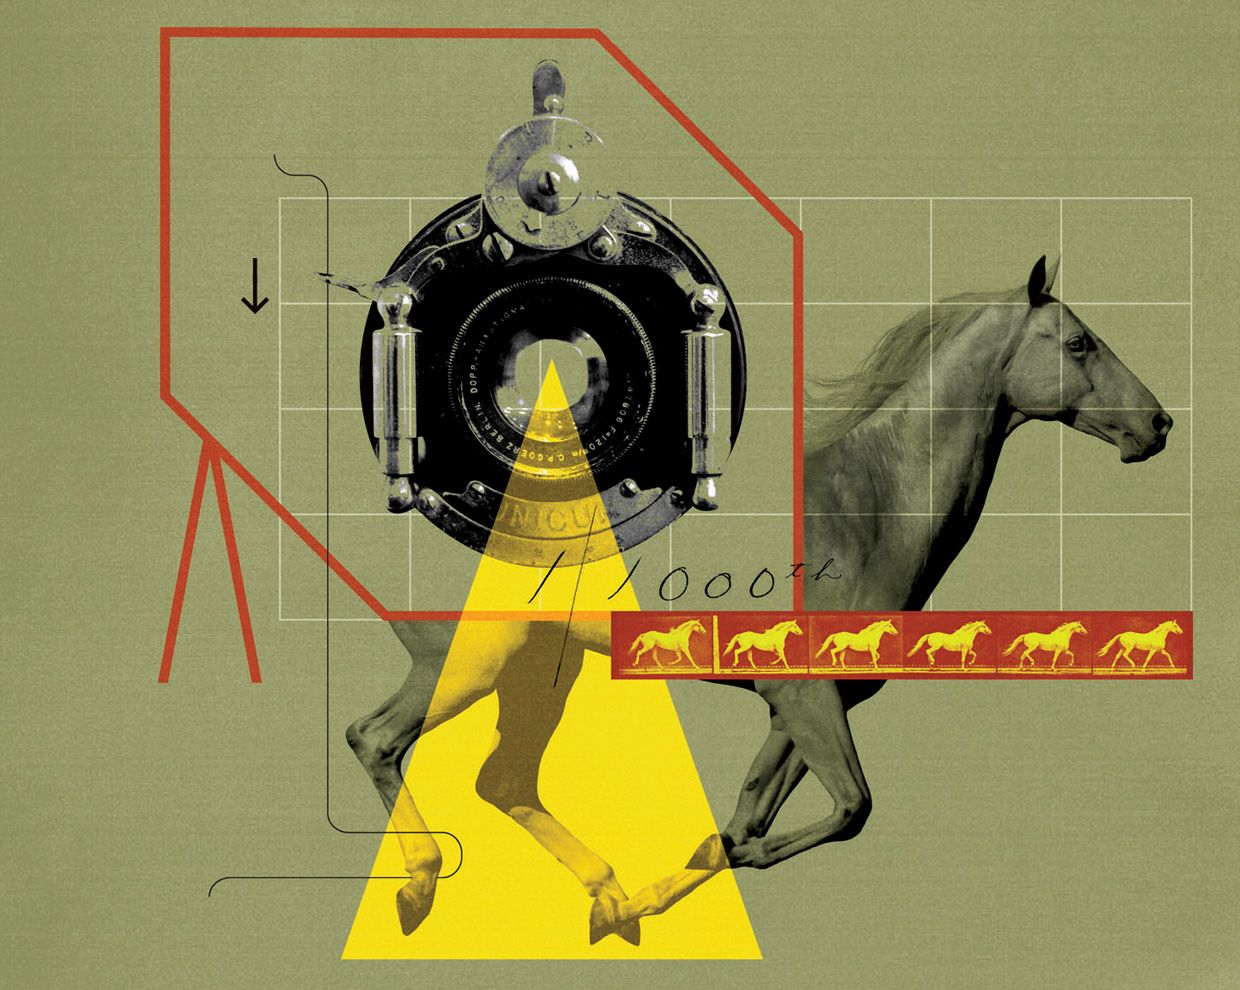 Photo-illustration of camera lens and running horse.